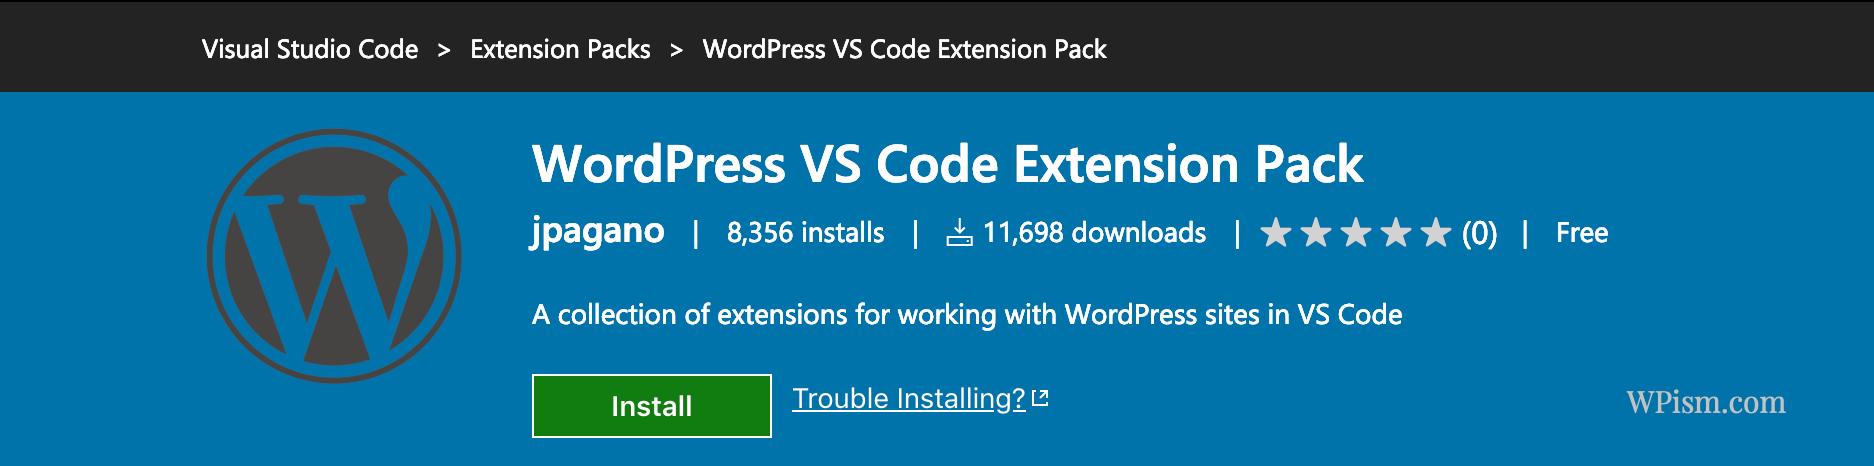 WordPress VS Code Extension Pack